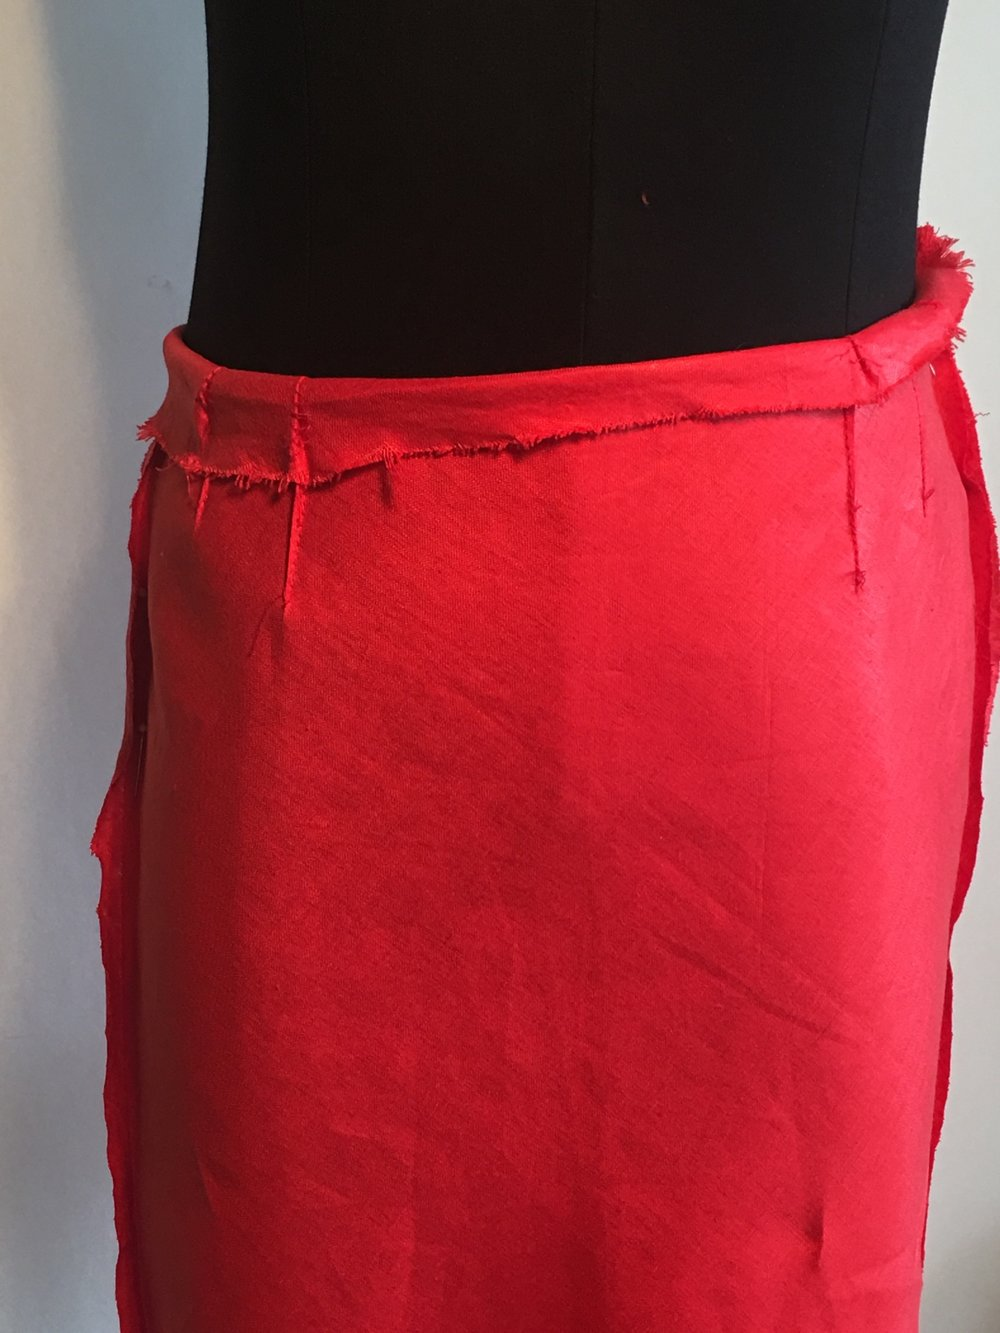 scoliosis red skirt 4.jpg